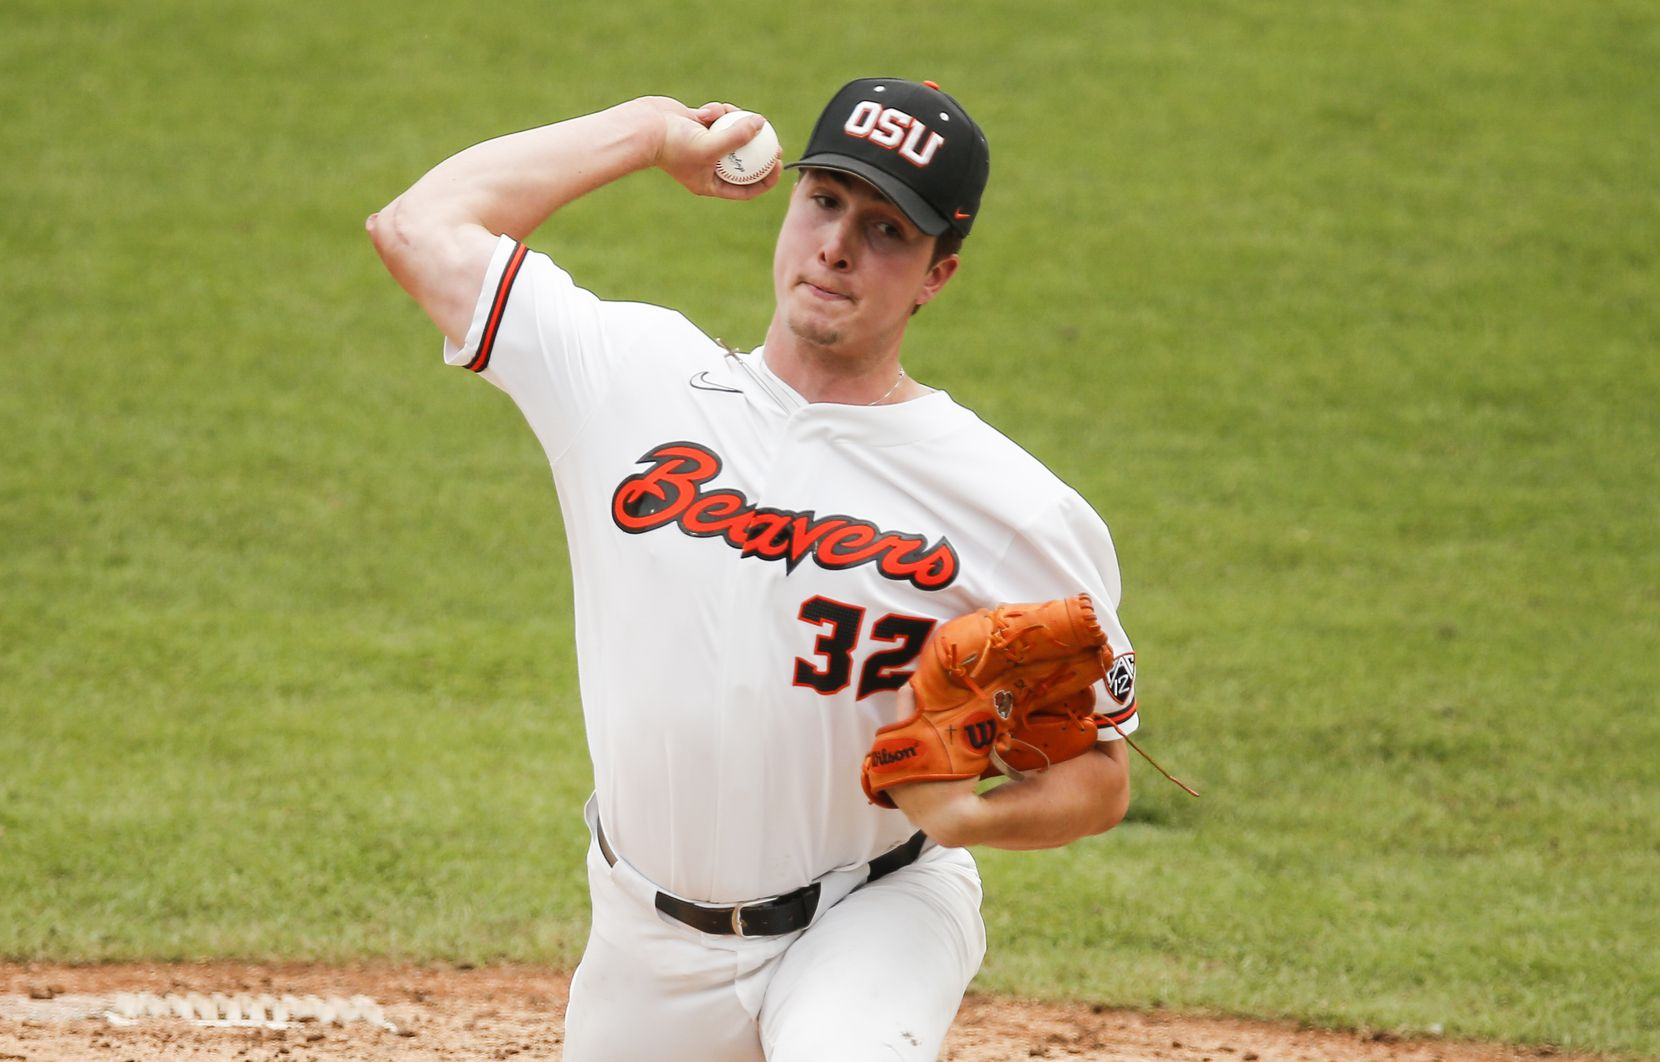 Oregon St. relief pitcher Mitchell Verburg (32) throws in the fifth inning during the NCAA Fort Worth Regional baseball tournament against DBU at TCU's Lupton Stadium in Fort Worth, Friday, June 4, 2021. Dallas Baptist won 6-5. (Brandon Wade/Special Contributor)